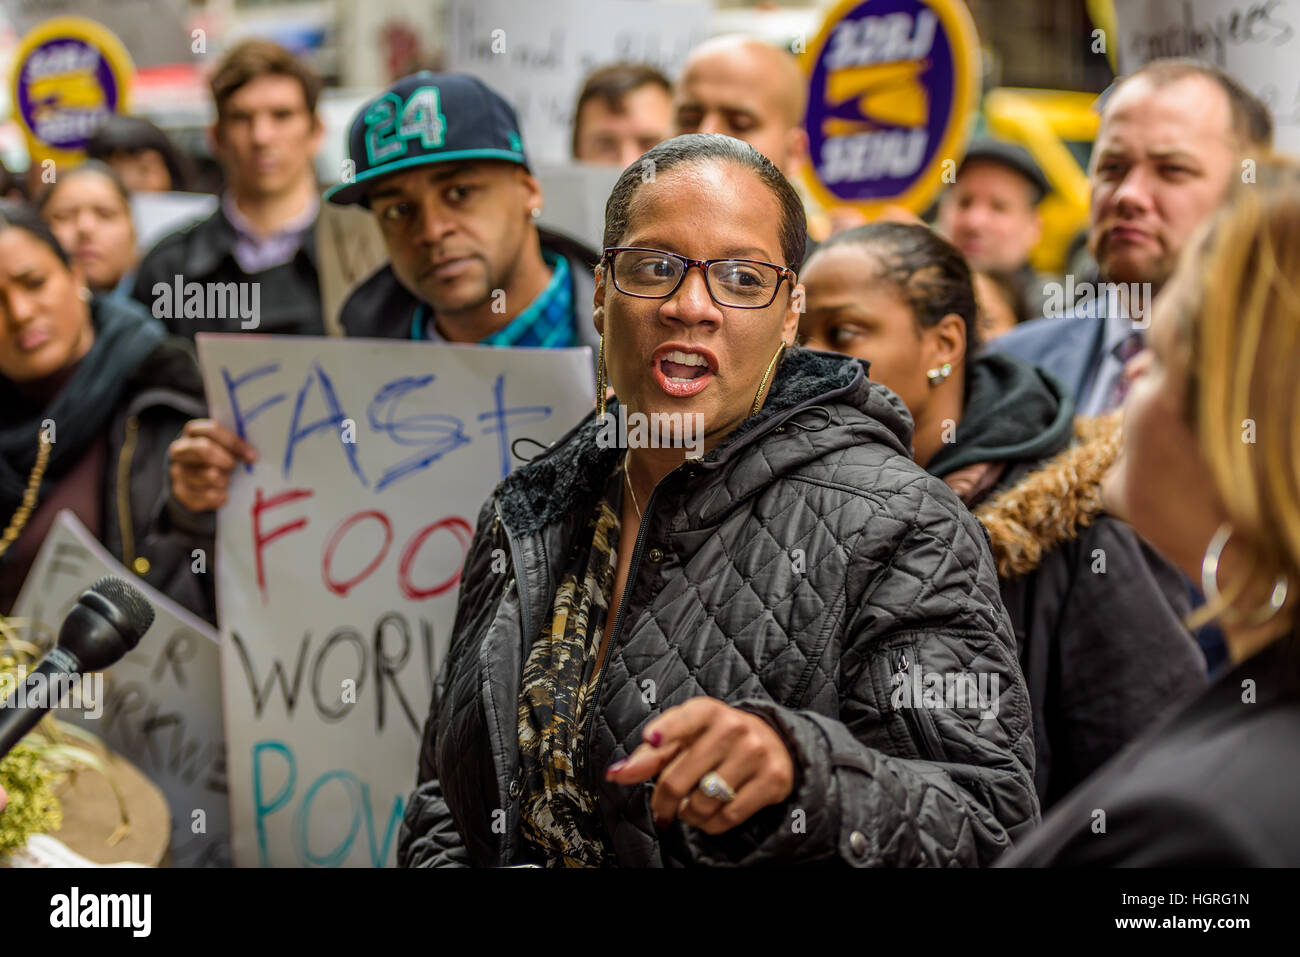 New York, United States. 12th Jan, 2017. New York City Council Member Julissa Ferreras-Copeland - On Thursday, January - Stock Image